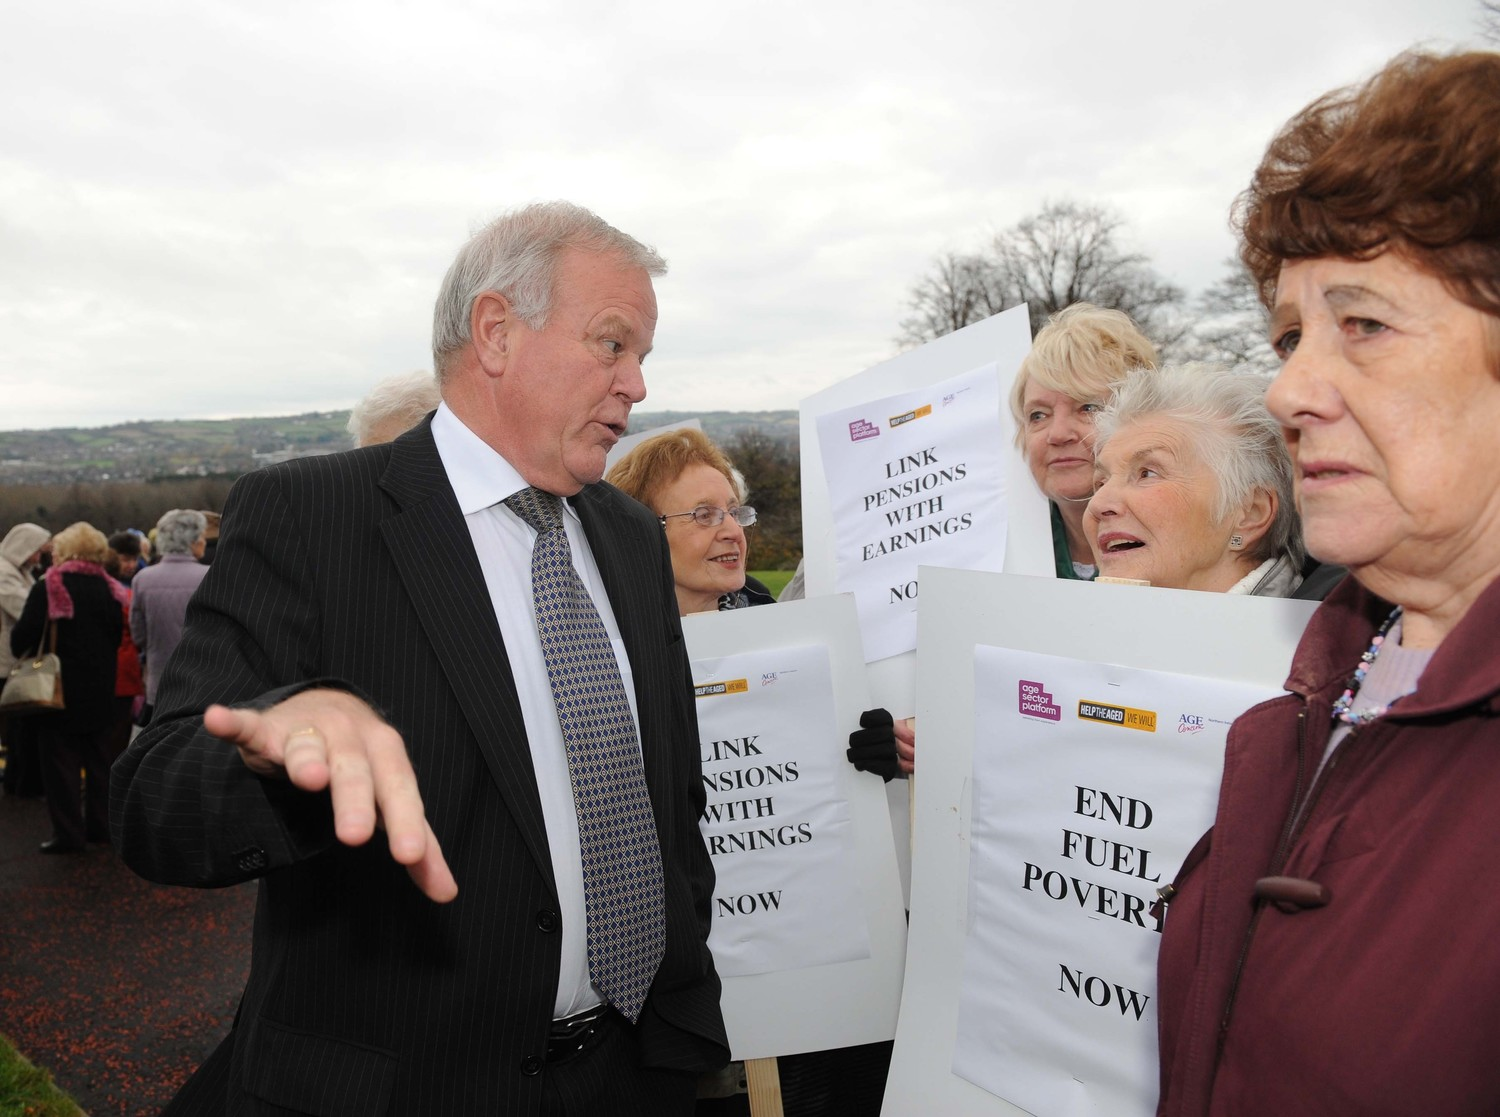 Pensioners campaigning against fuel poverty confront MLA pension fund chairman Trevor Lunn